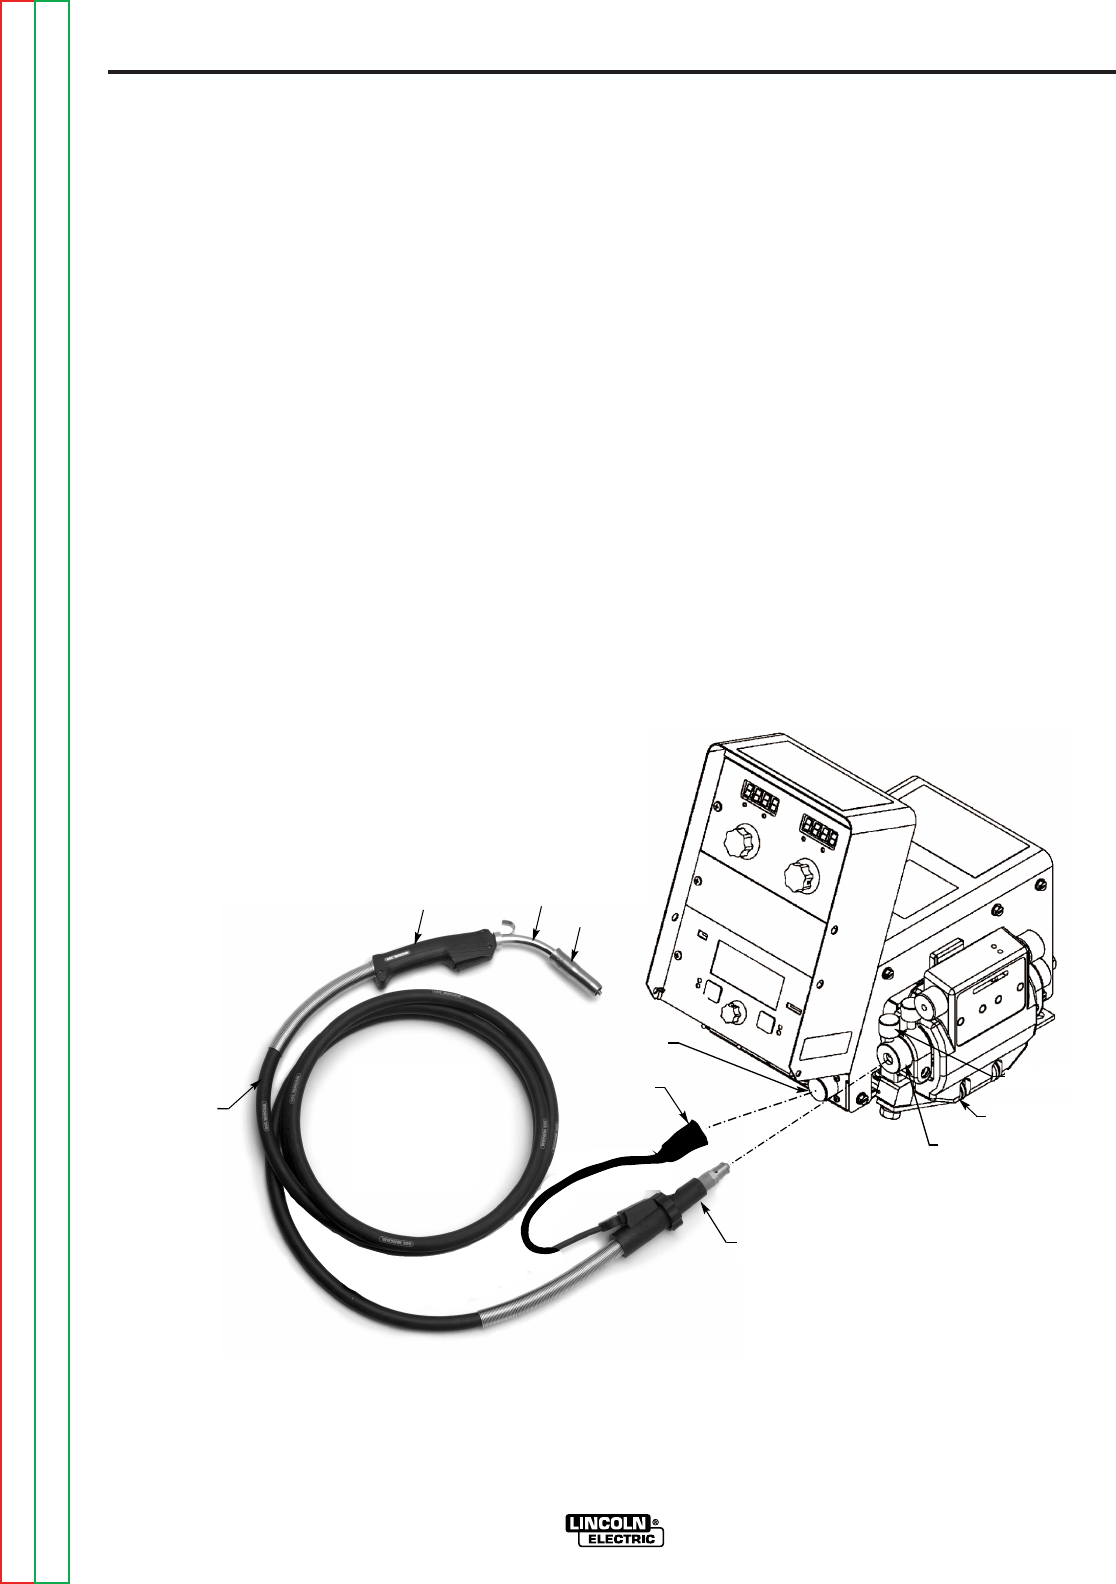 Page 15 Of Lincoln Electric Welding System Svm172 A User